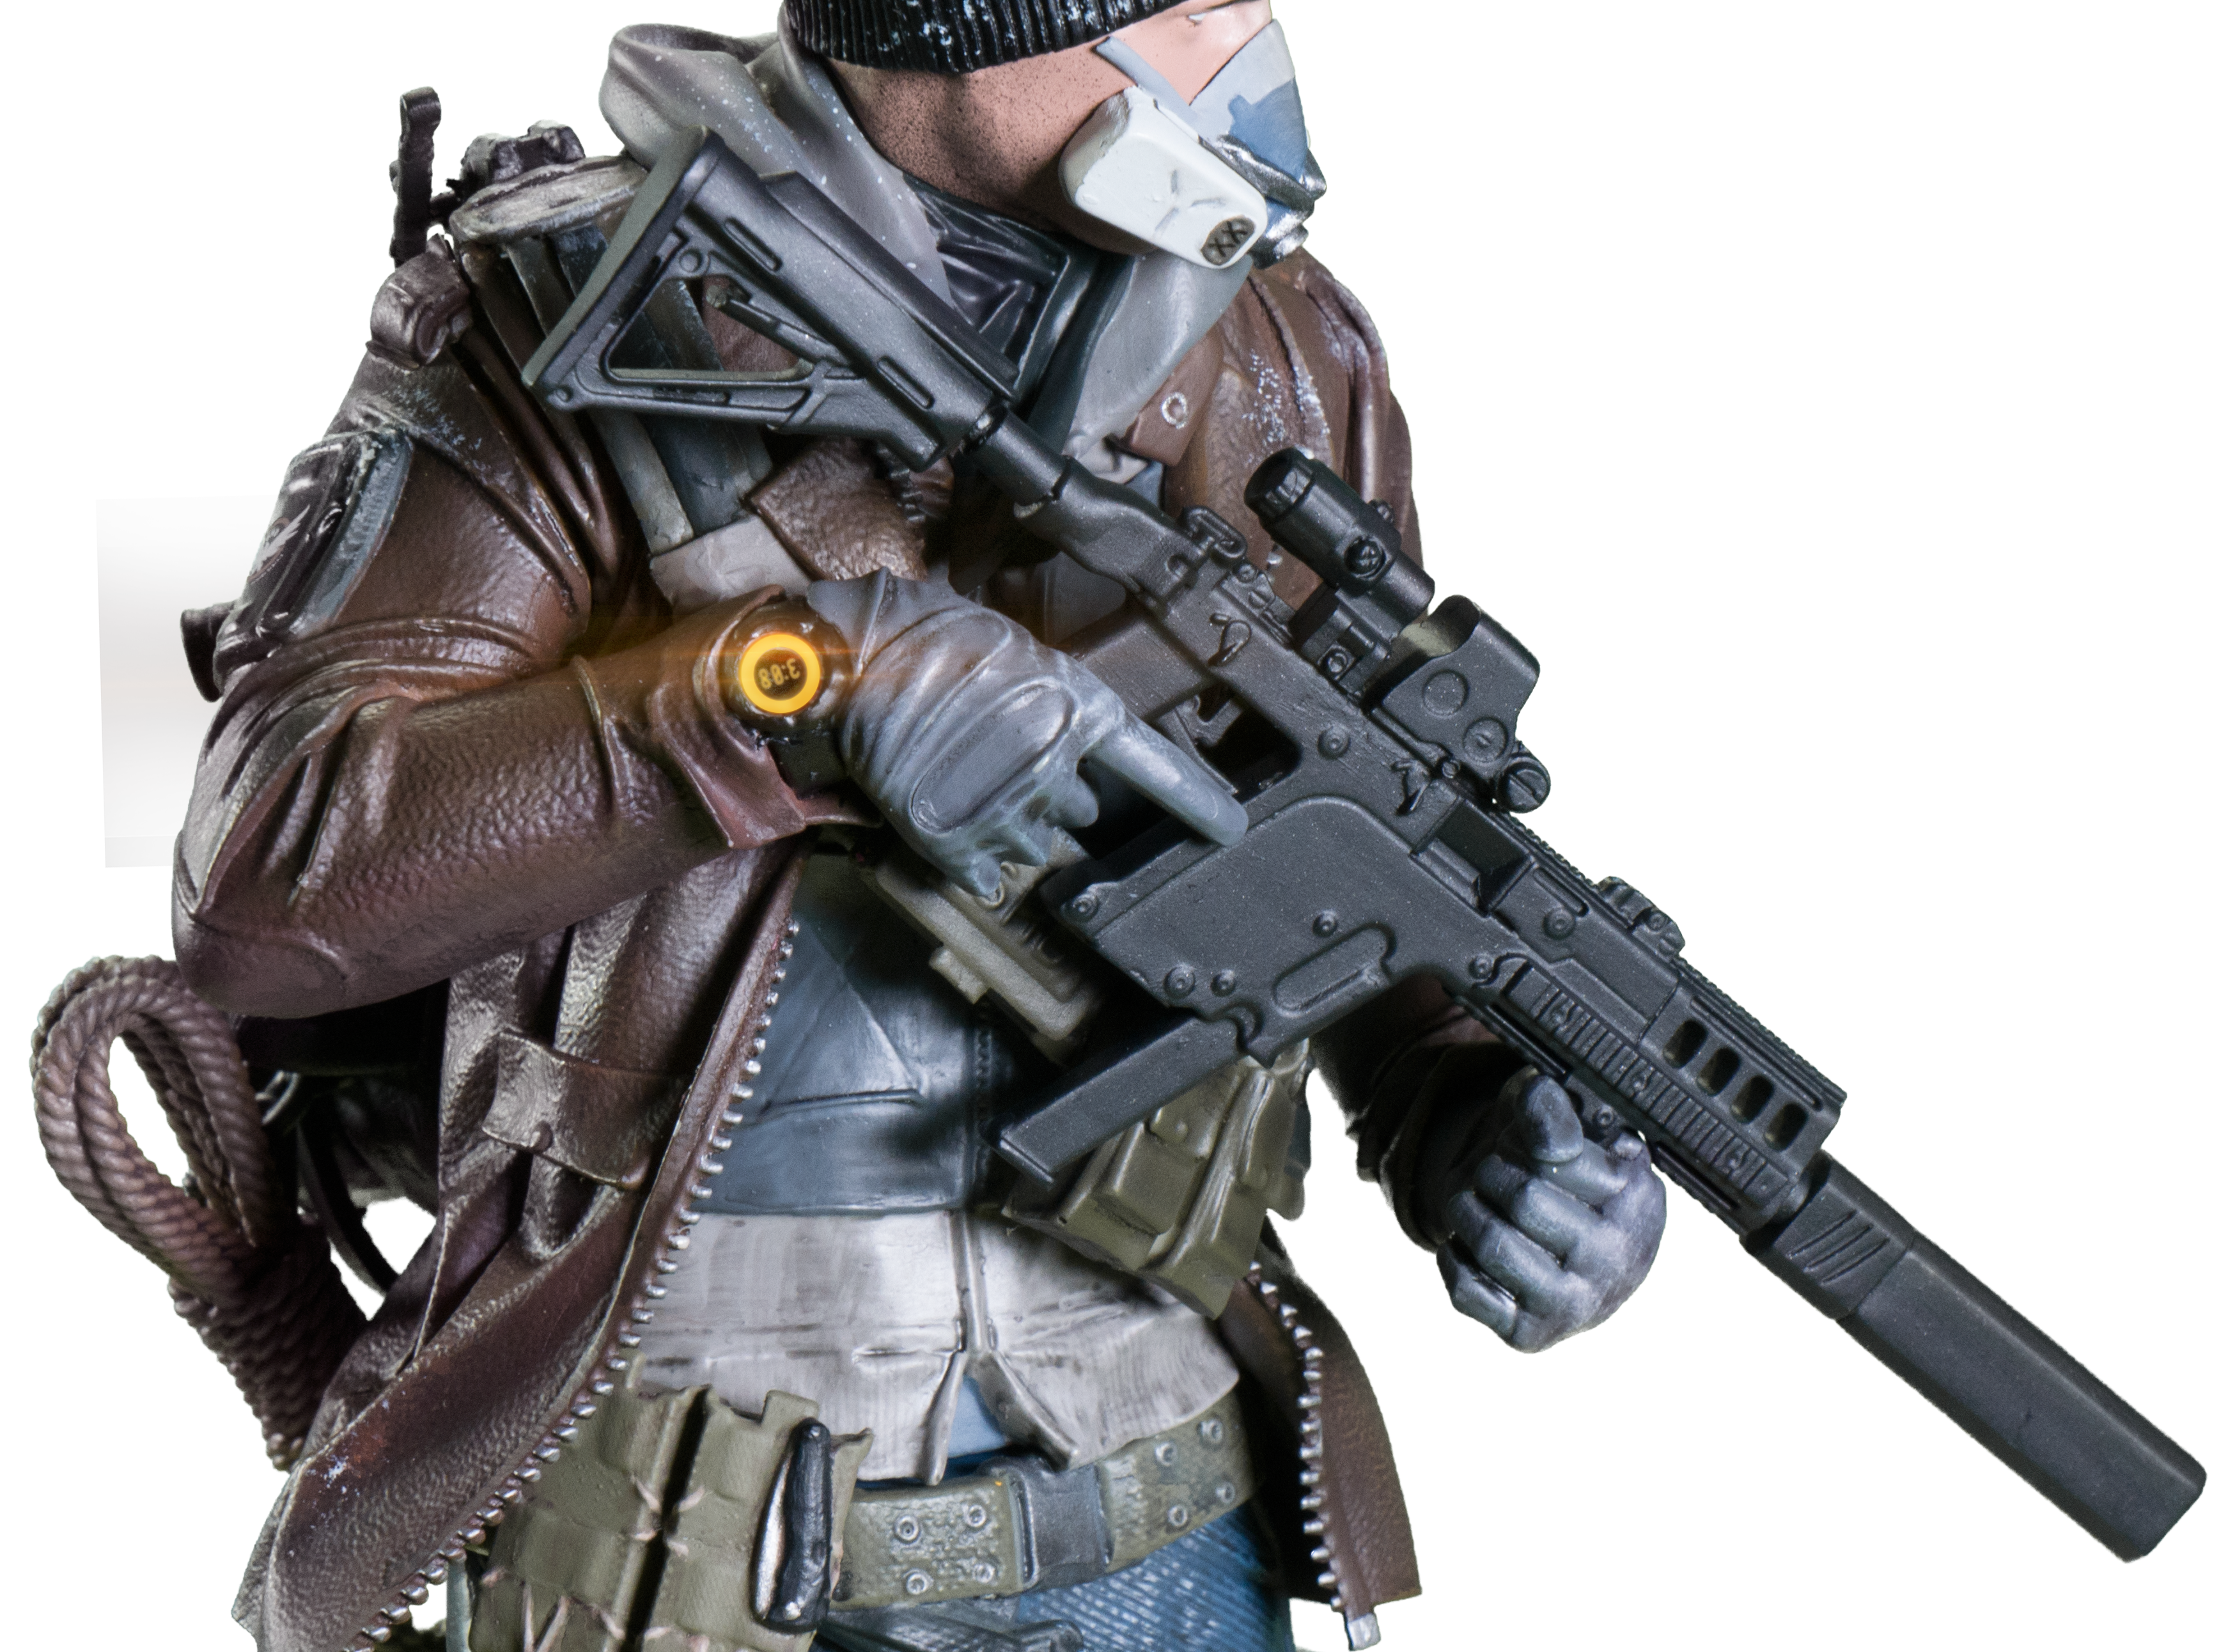 Tom Clancy s Ghost Recon Jungle Storm | Tom clancy, Storms and Toms